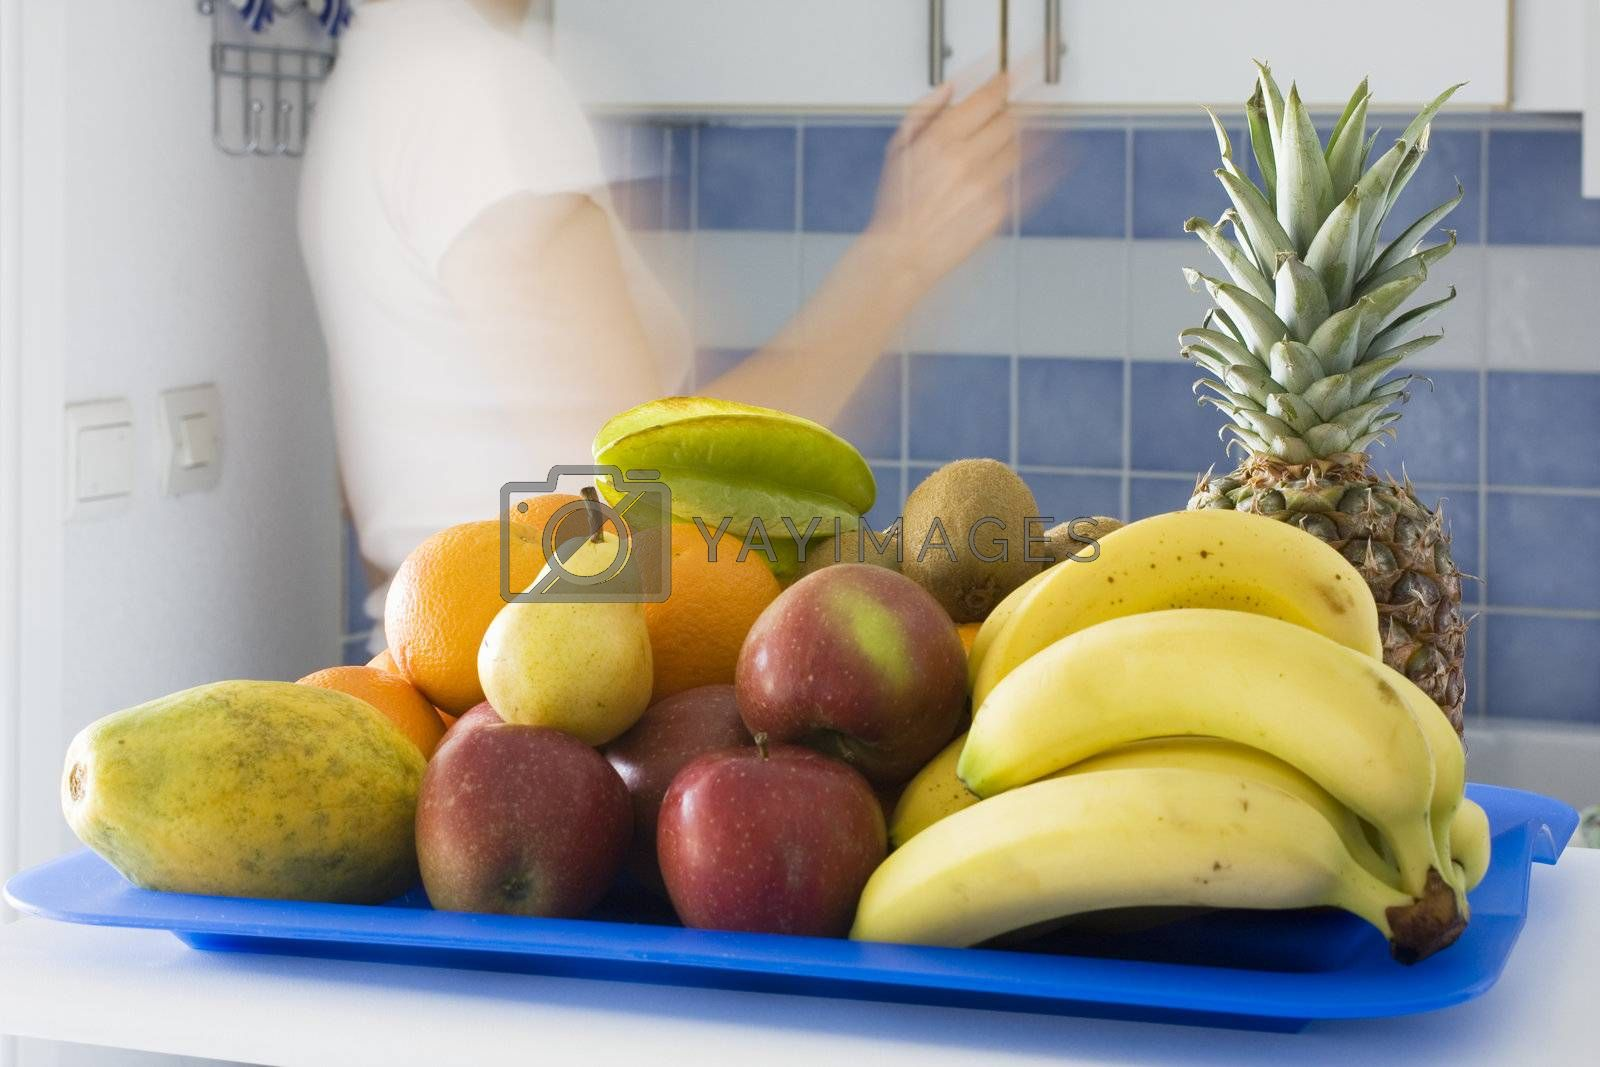 Fruits in a kitchen with blurred moving woman in the background